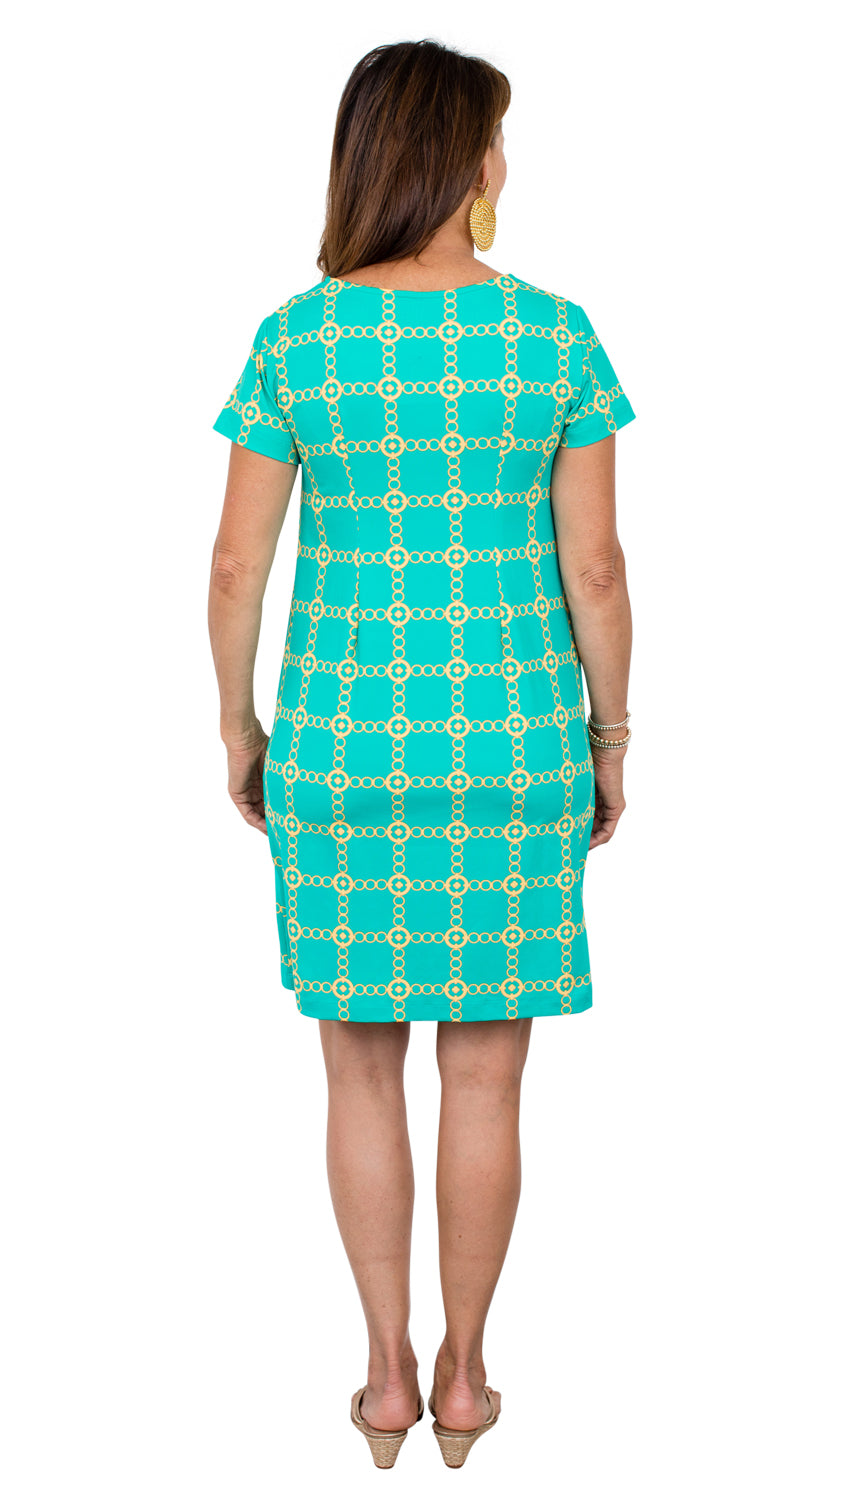 Marina Dress - Green/Gold Autumn Chain FINAL SALE